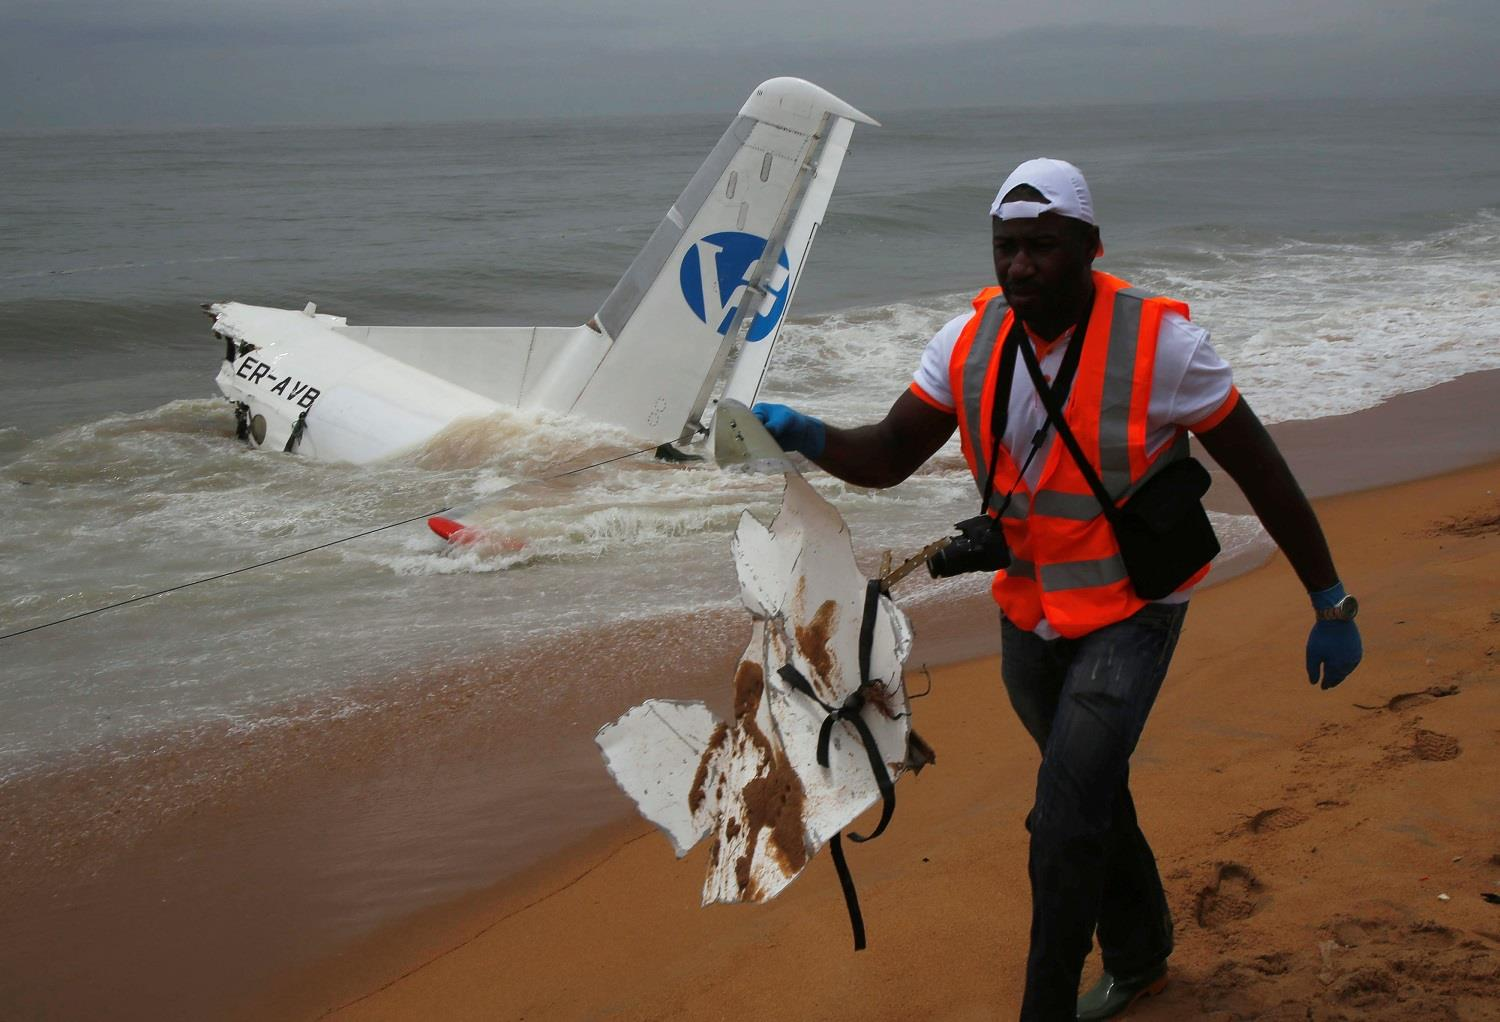 A rescuer carries a piece of a cargo plane after it crashed into the sea near the international airport in Ivory Coast's main city, Abidjan